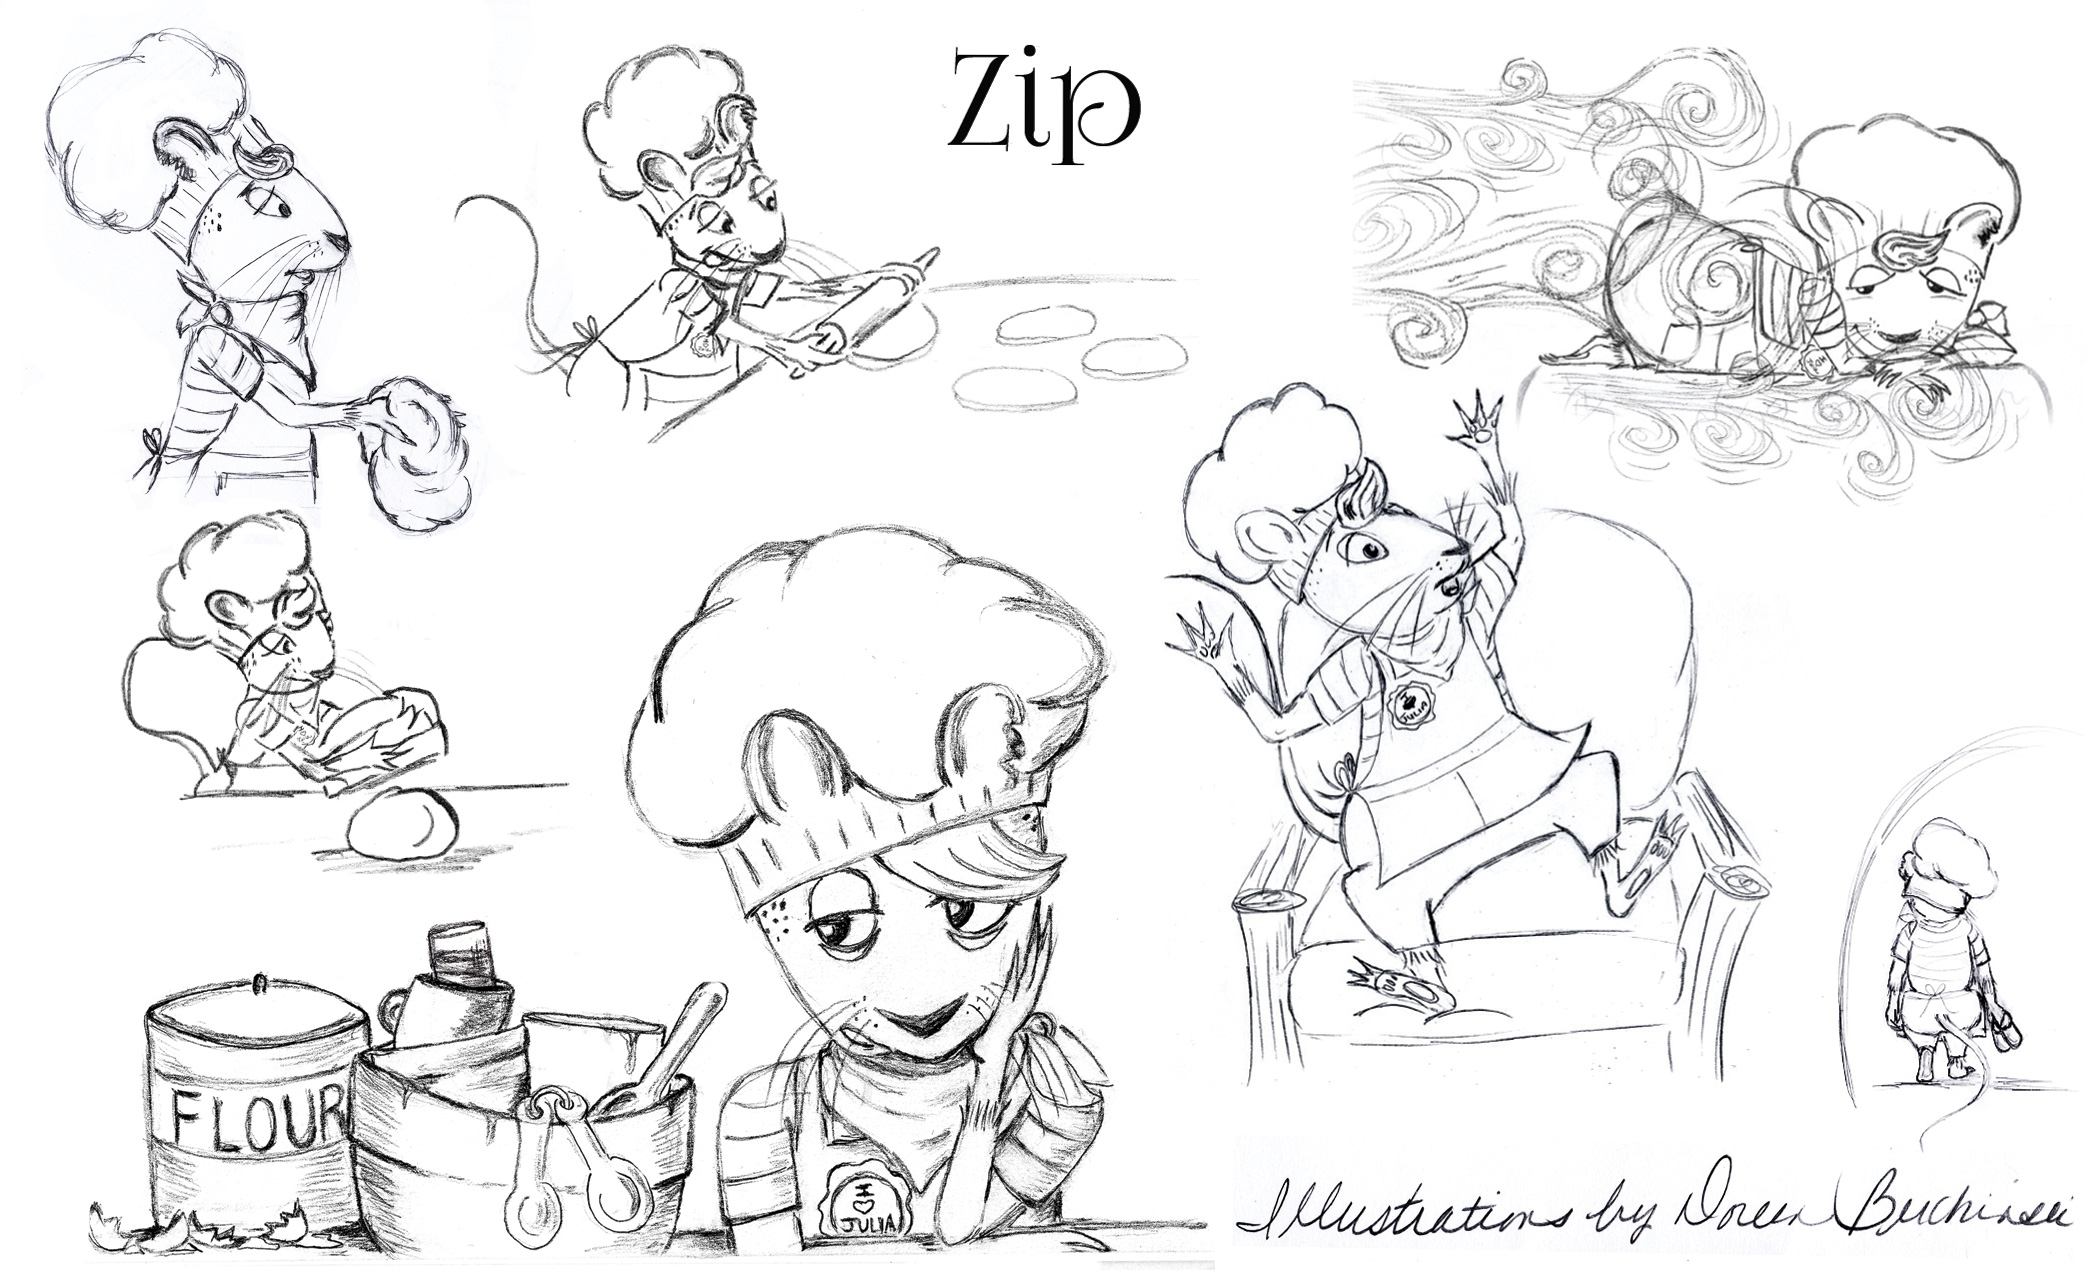 Ziip Character Illustrations